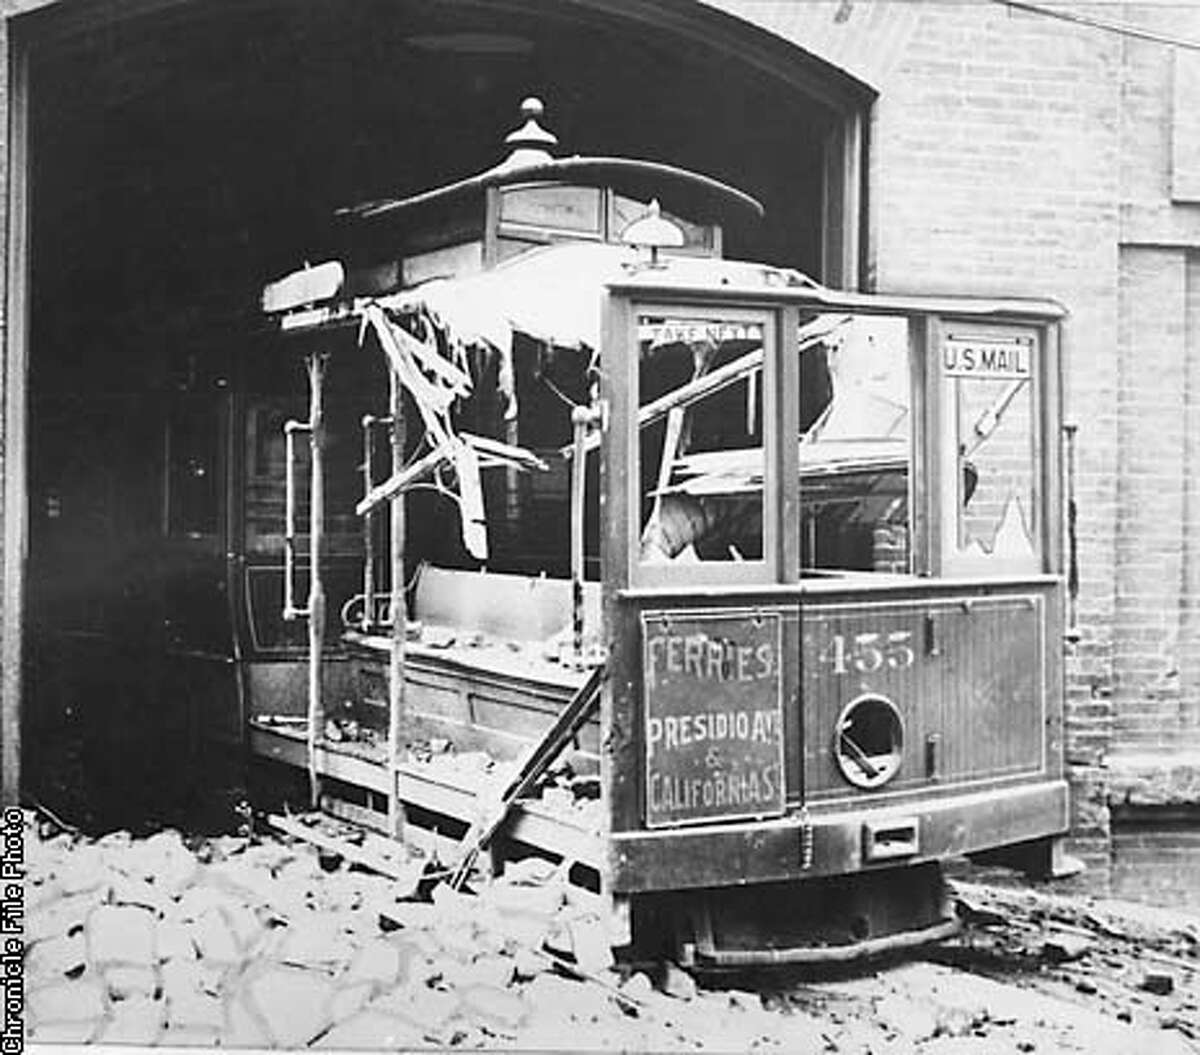 CABLE CAR PHOTOGRAPHED APRIL 18 1906, JUST AFTER AN EARTHQUAKE.